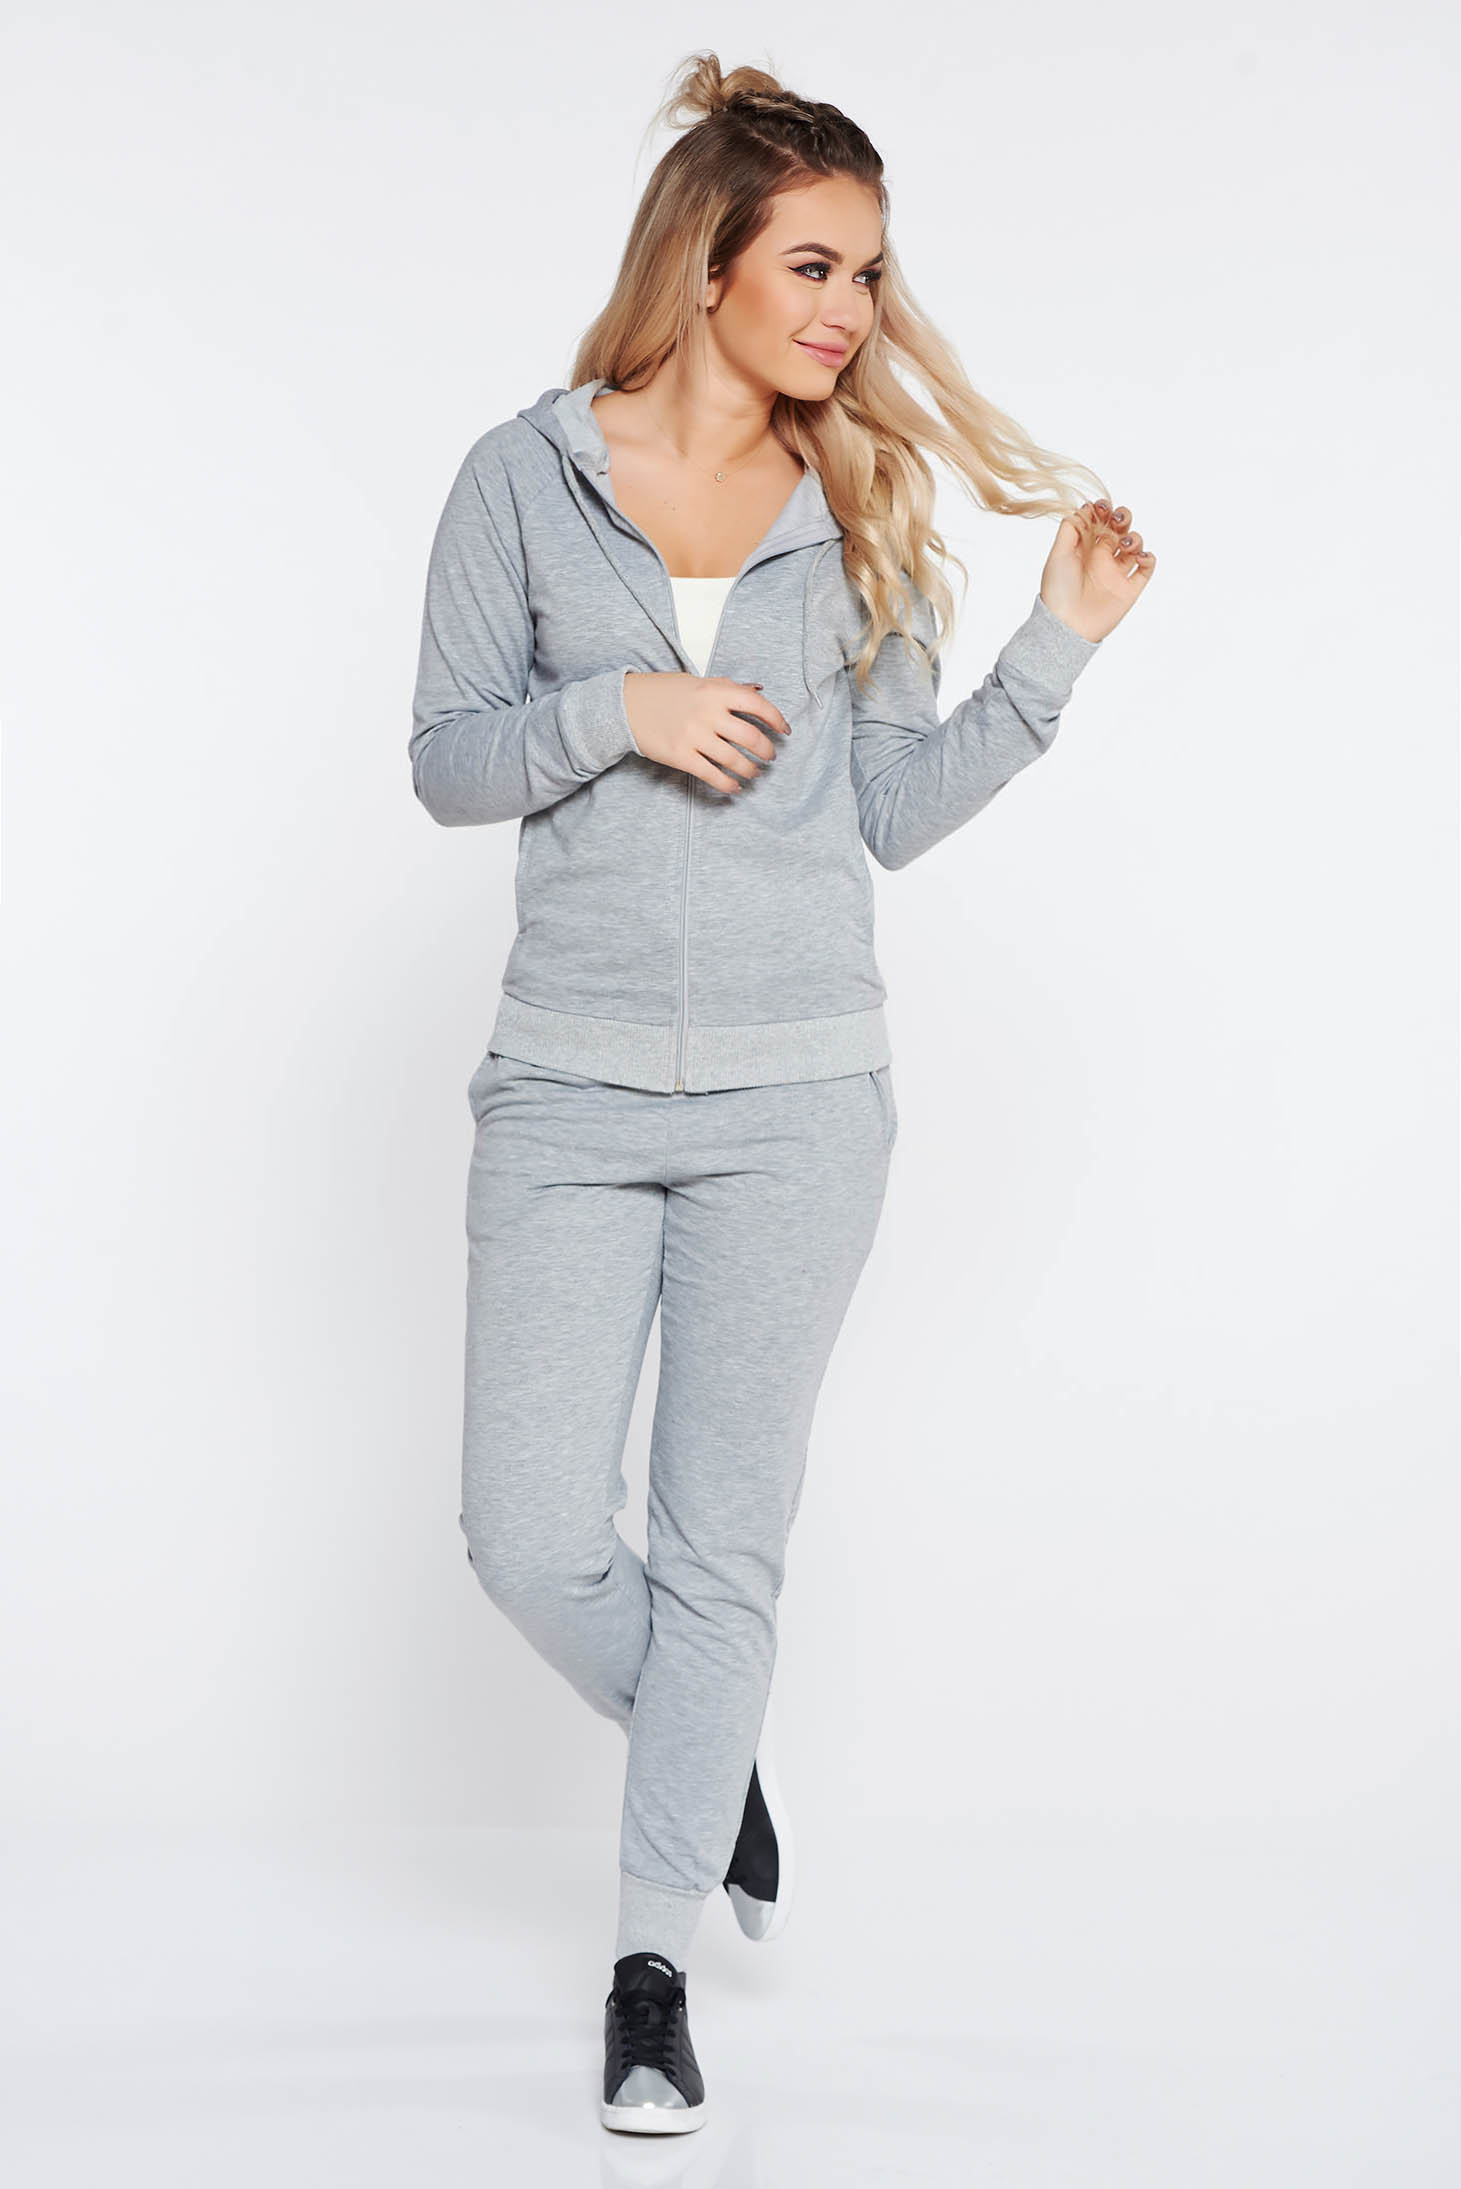 SunShine grey sporty set from 2 pieces slightly elastic cotton